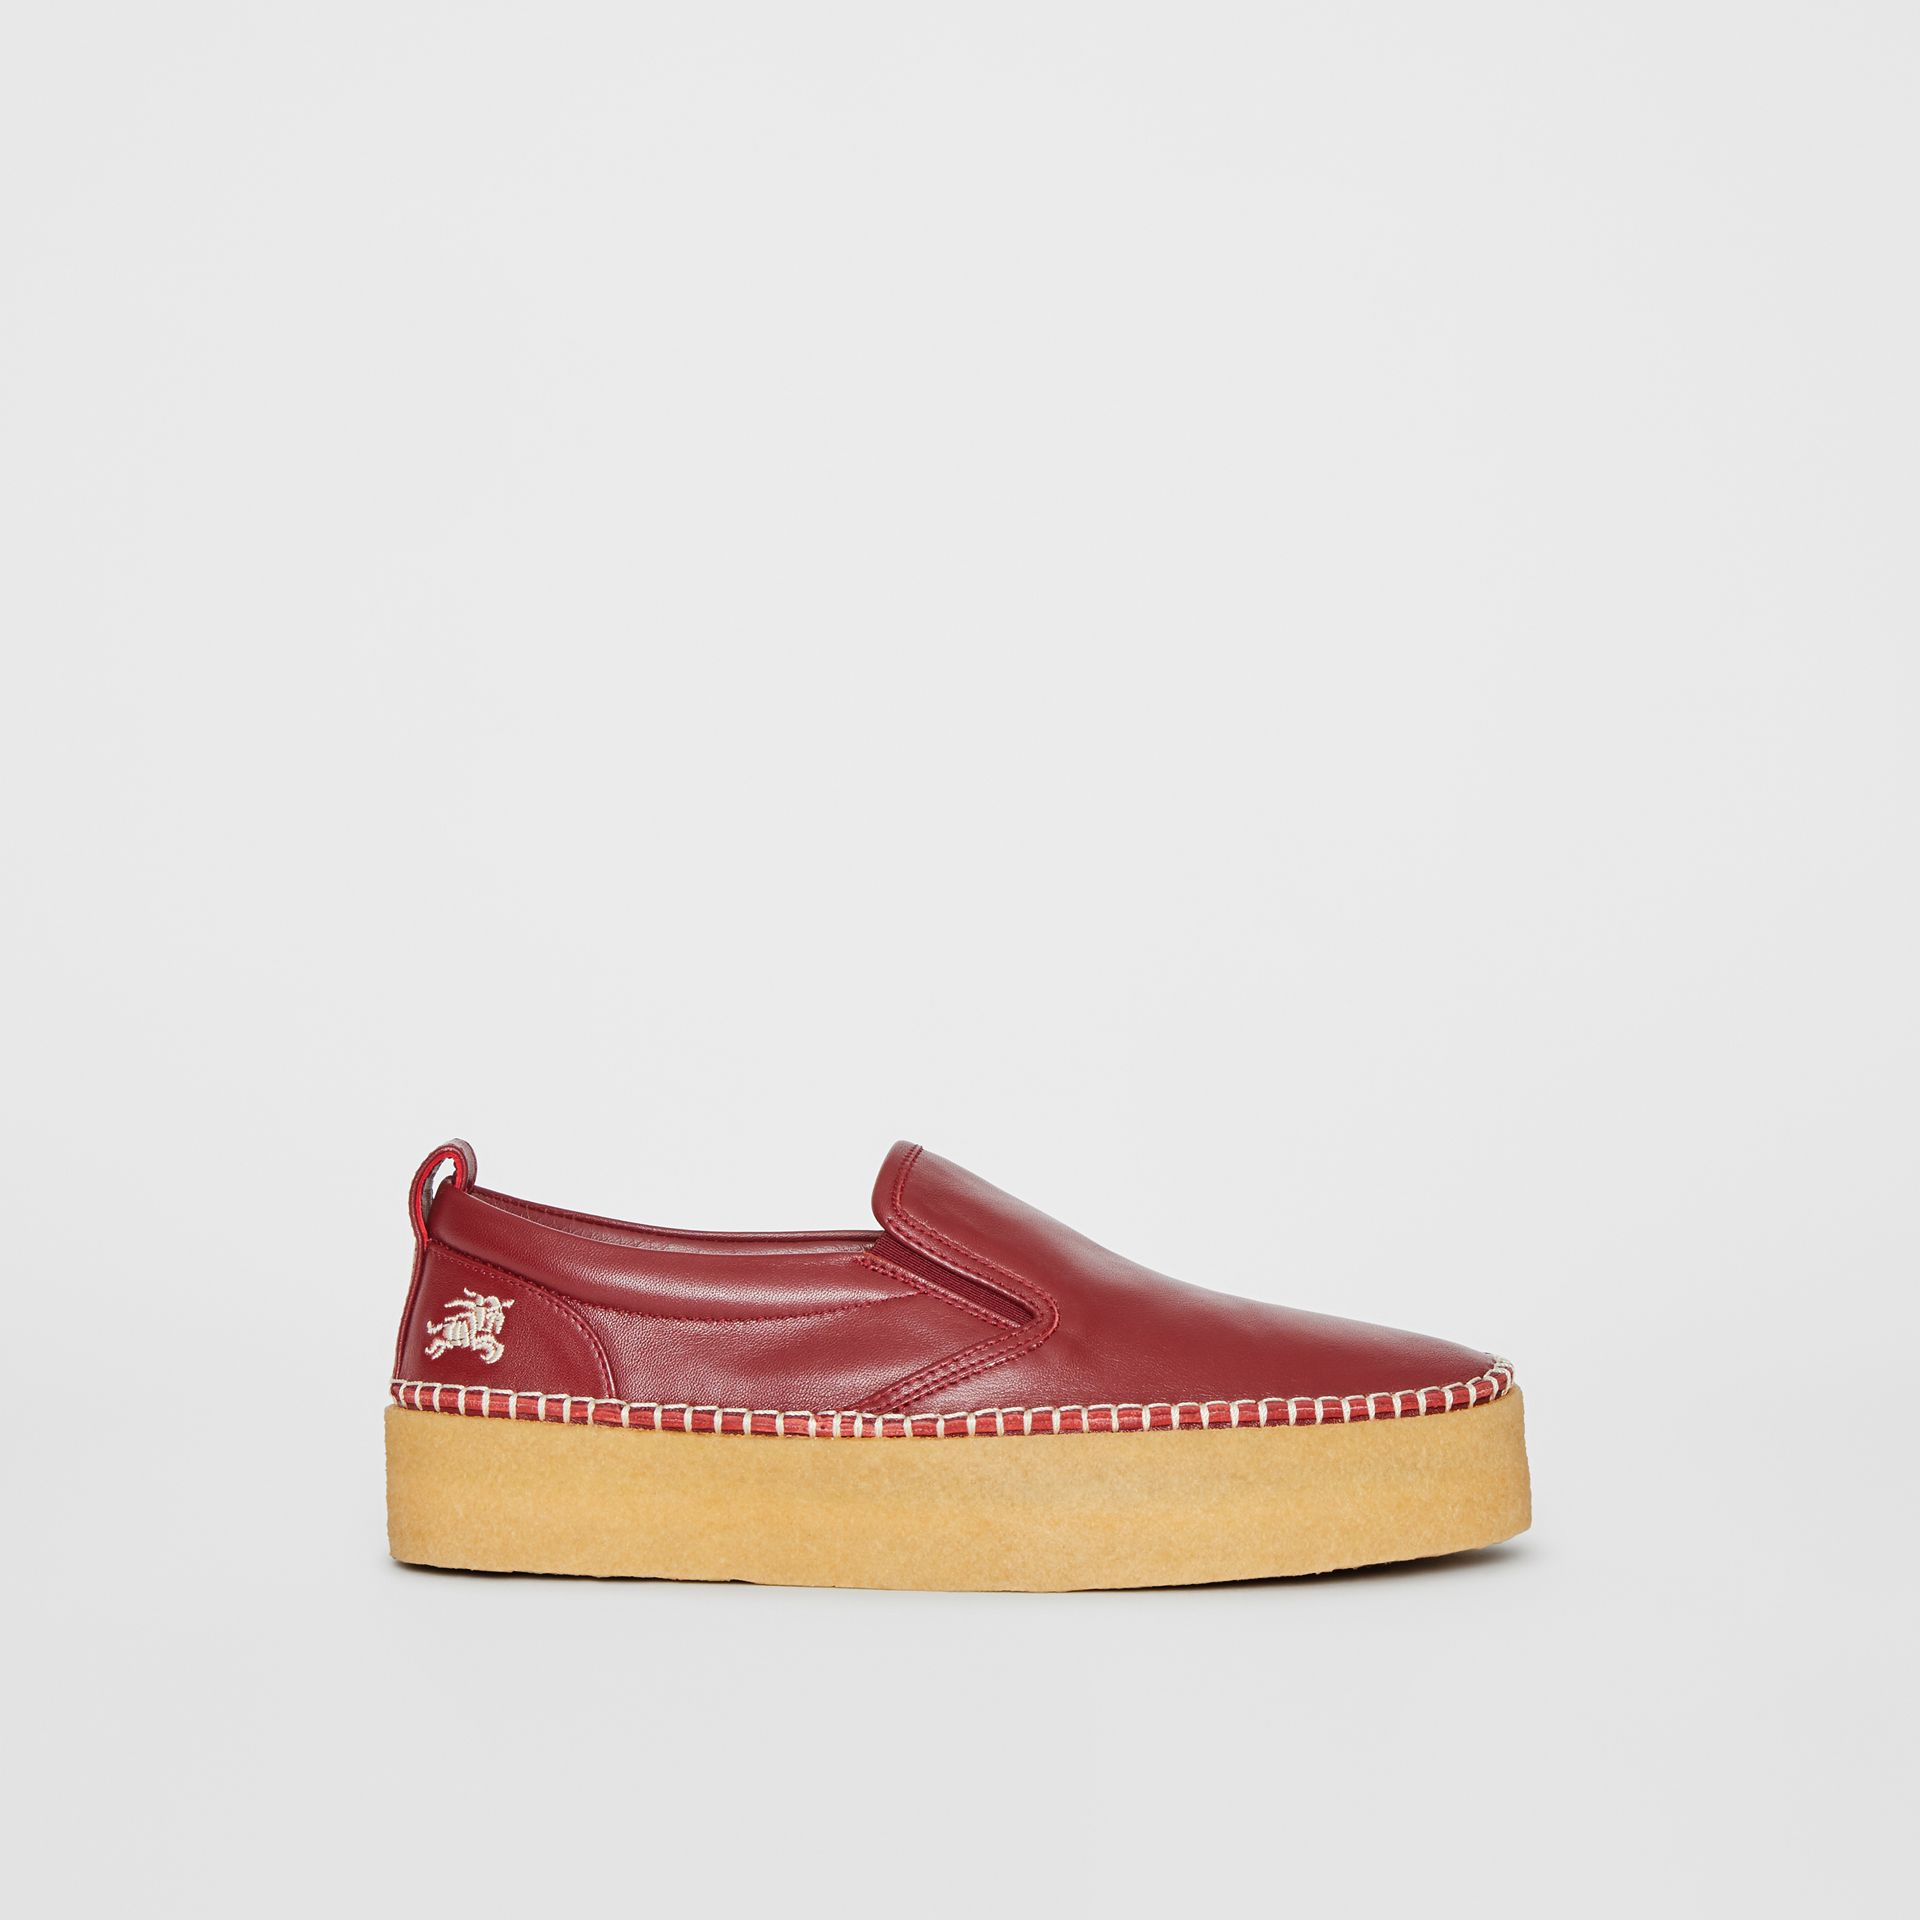 Leather Slip-on Sneakers in Bordeaux - Women | Burberry United States - gallery image 5